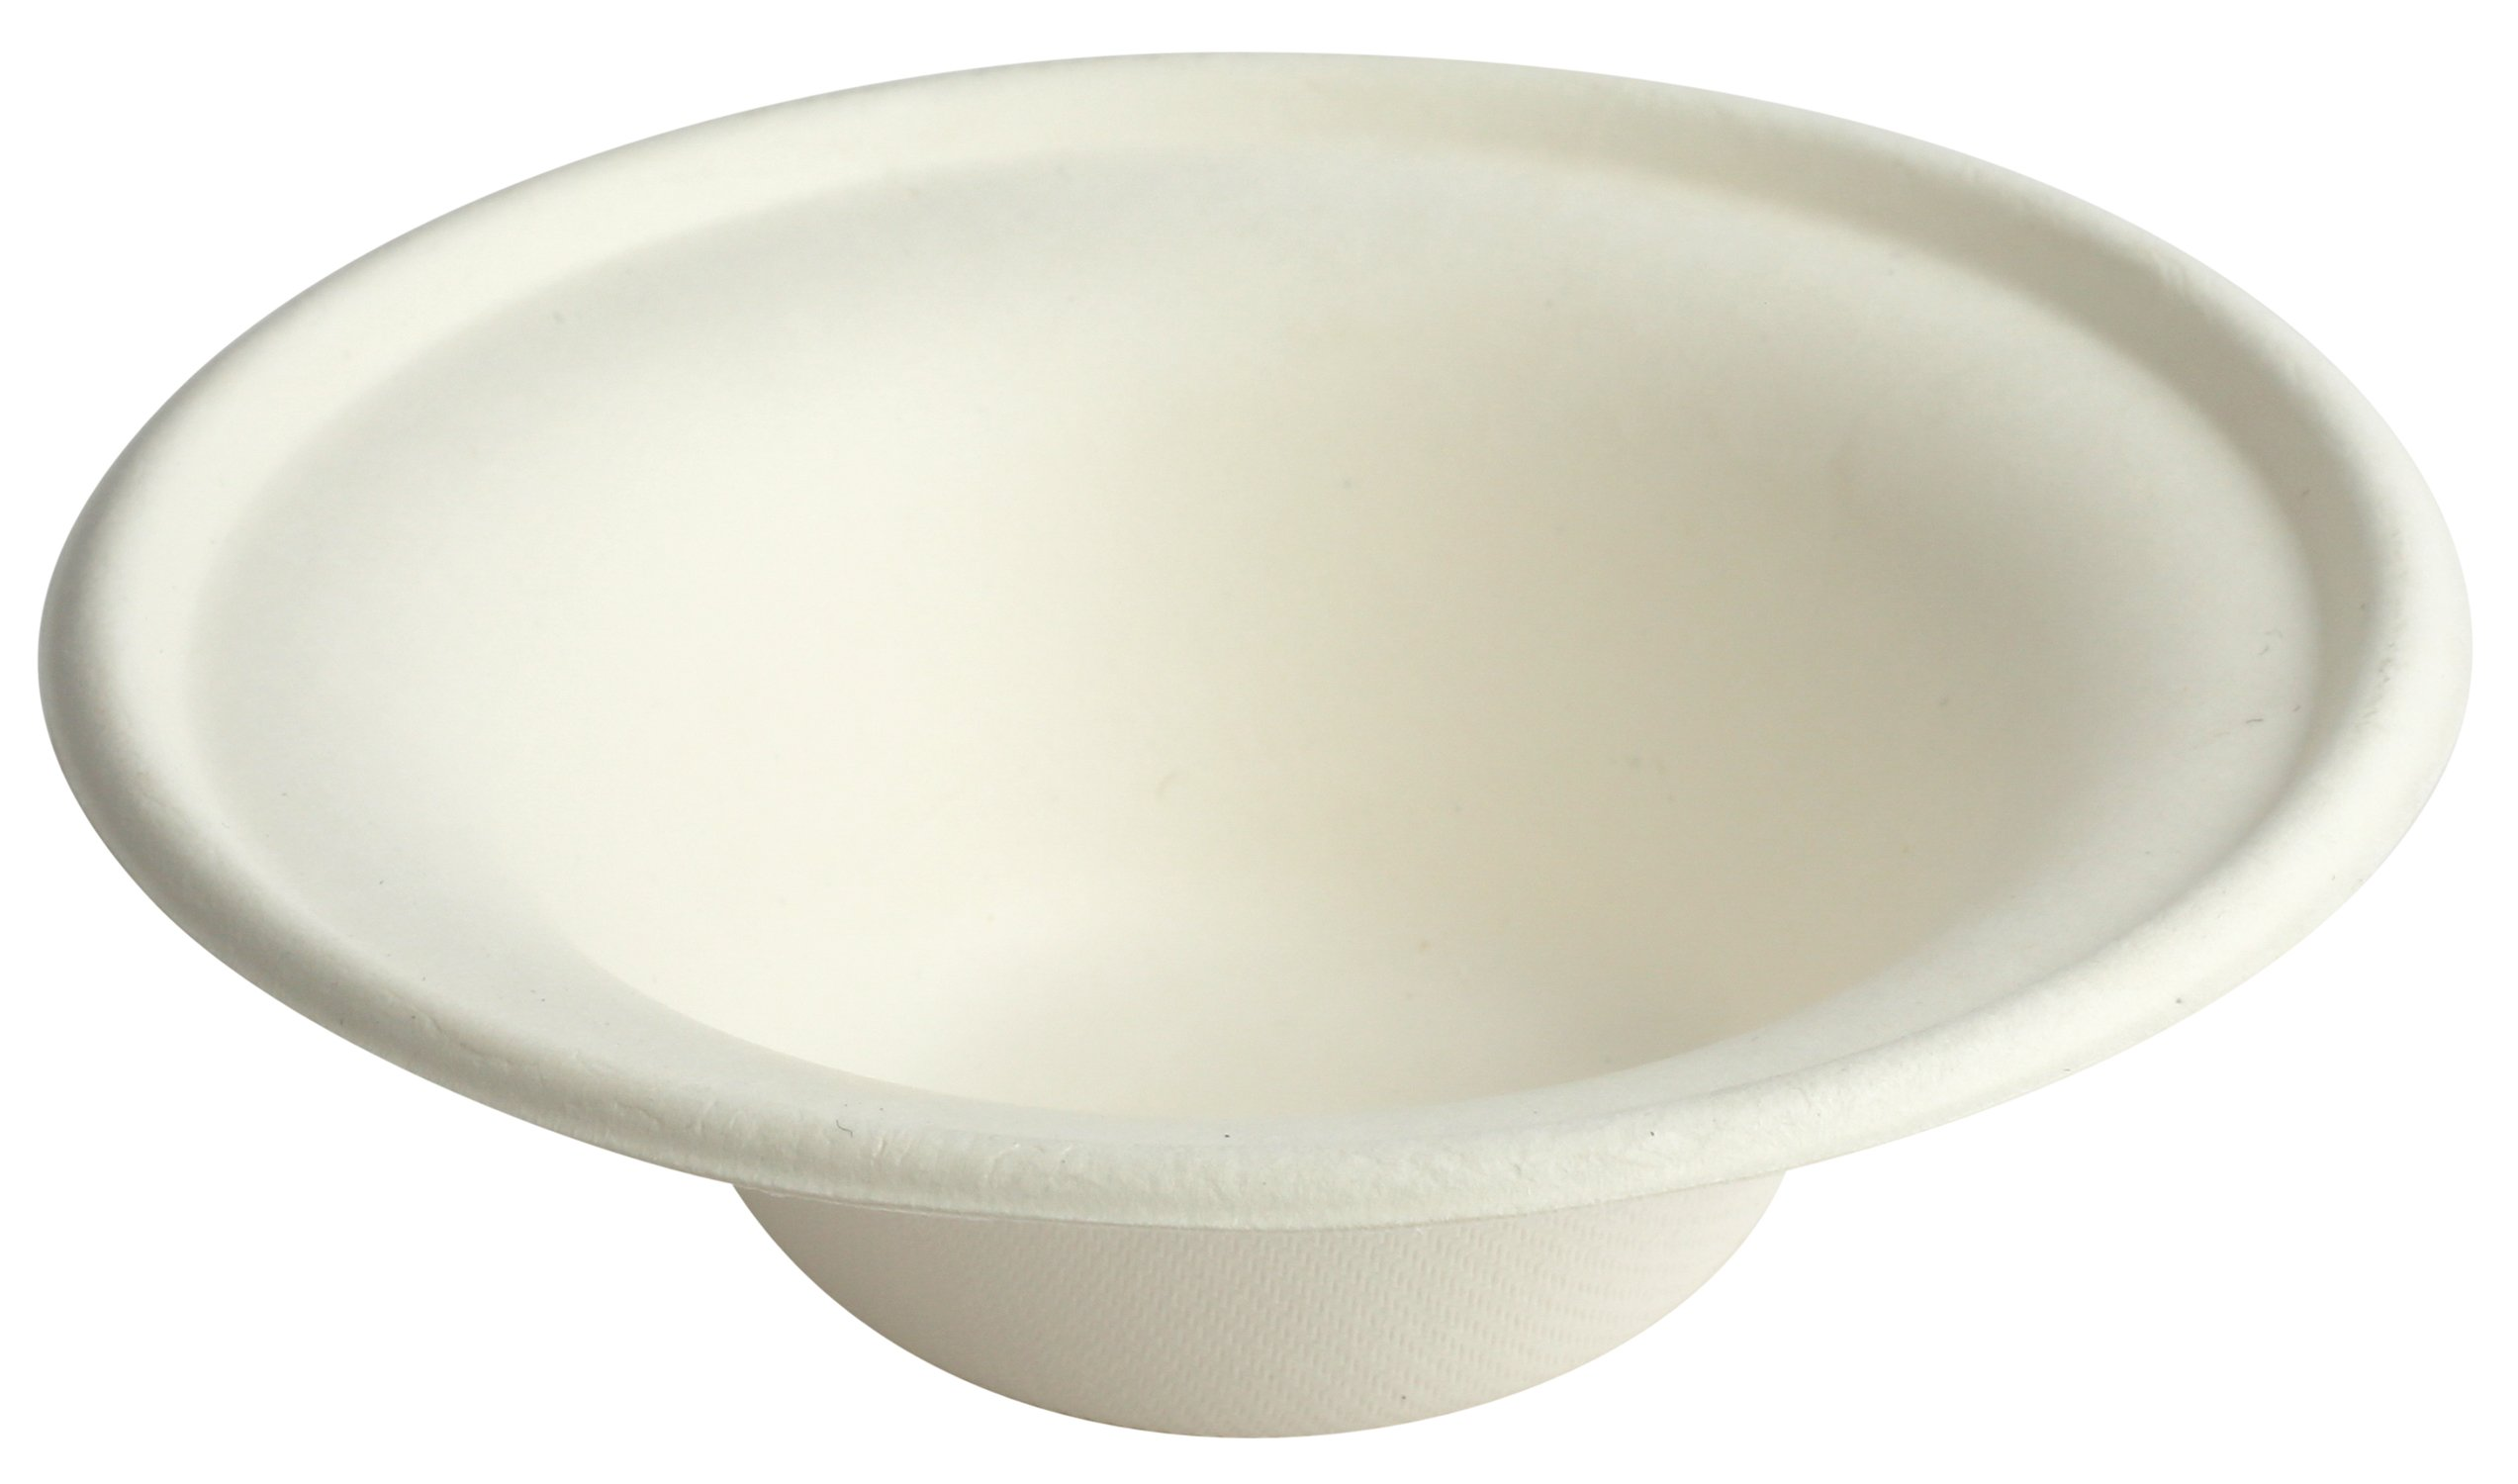 Brheez 8 ounce Heavy Duty Bowls 100% Natural Sugarcane Biodegradable Compostable Bagasse, Eco-friendly paper alternative - Pack of 60